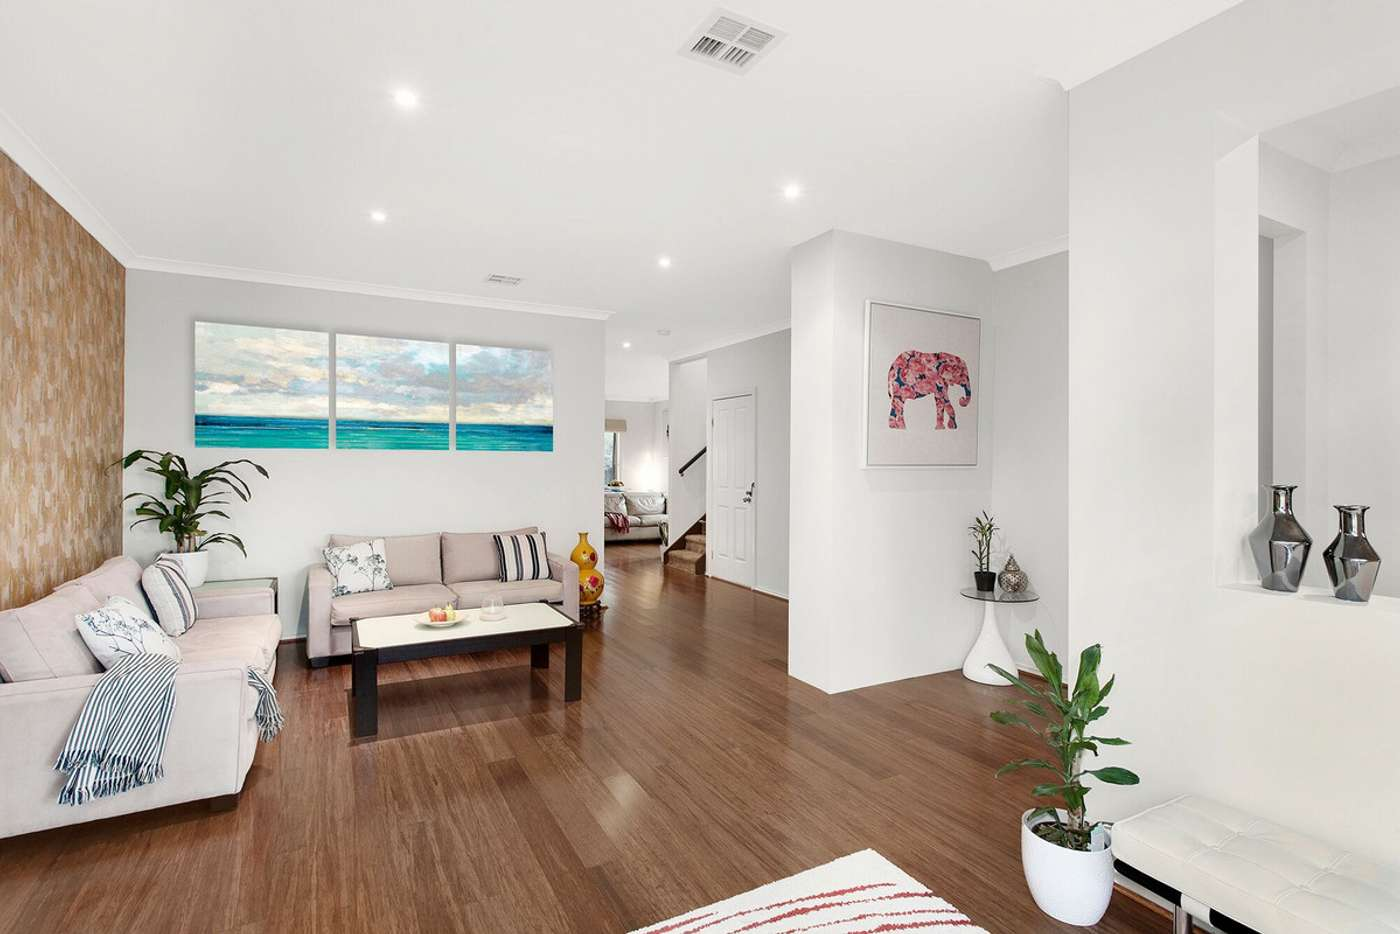 Fifth view of Homely house listing, 1/20 Park Avenue, Glen Huntly VIC 3163